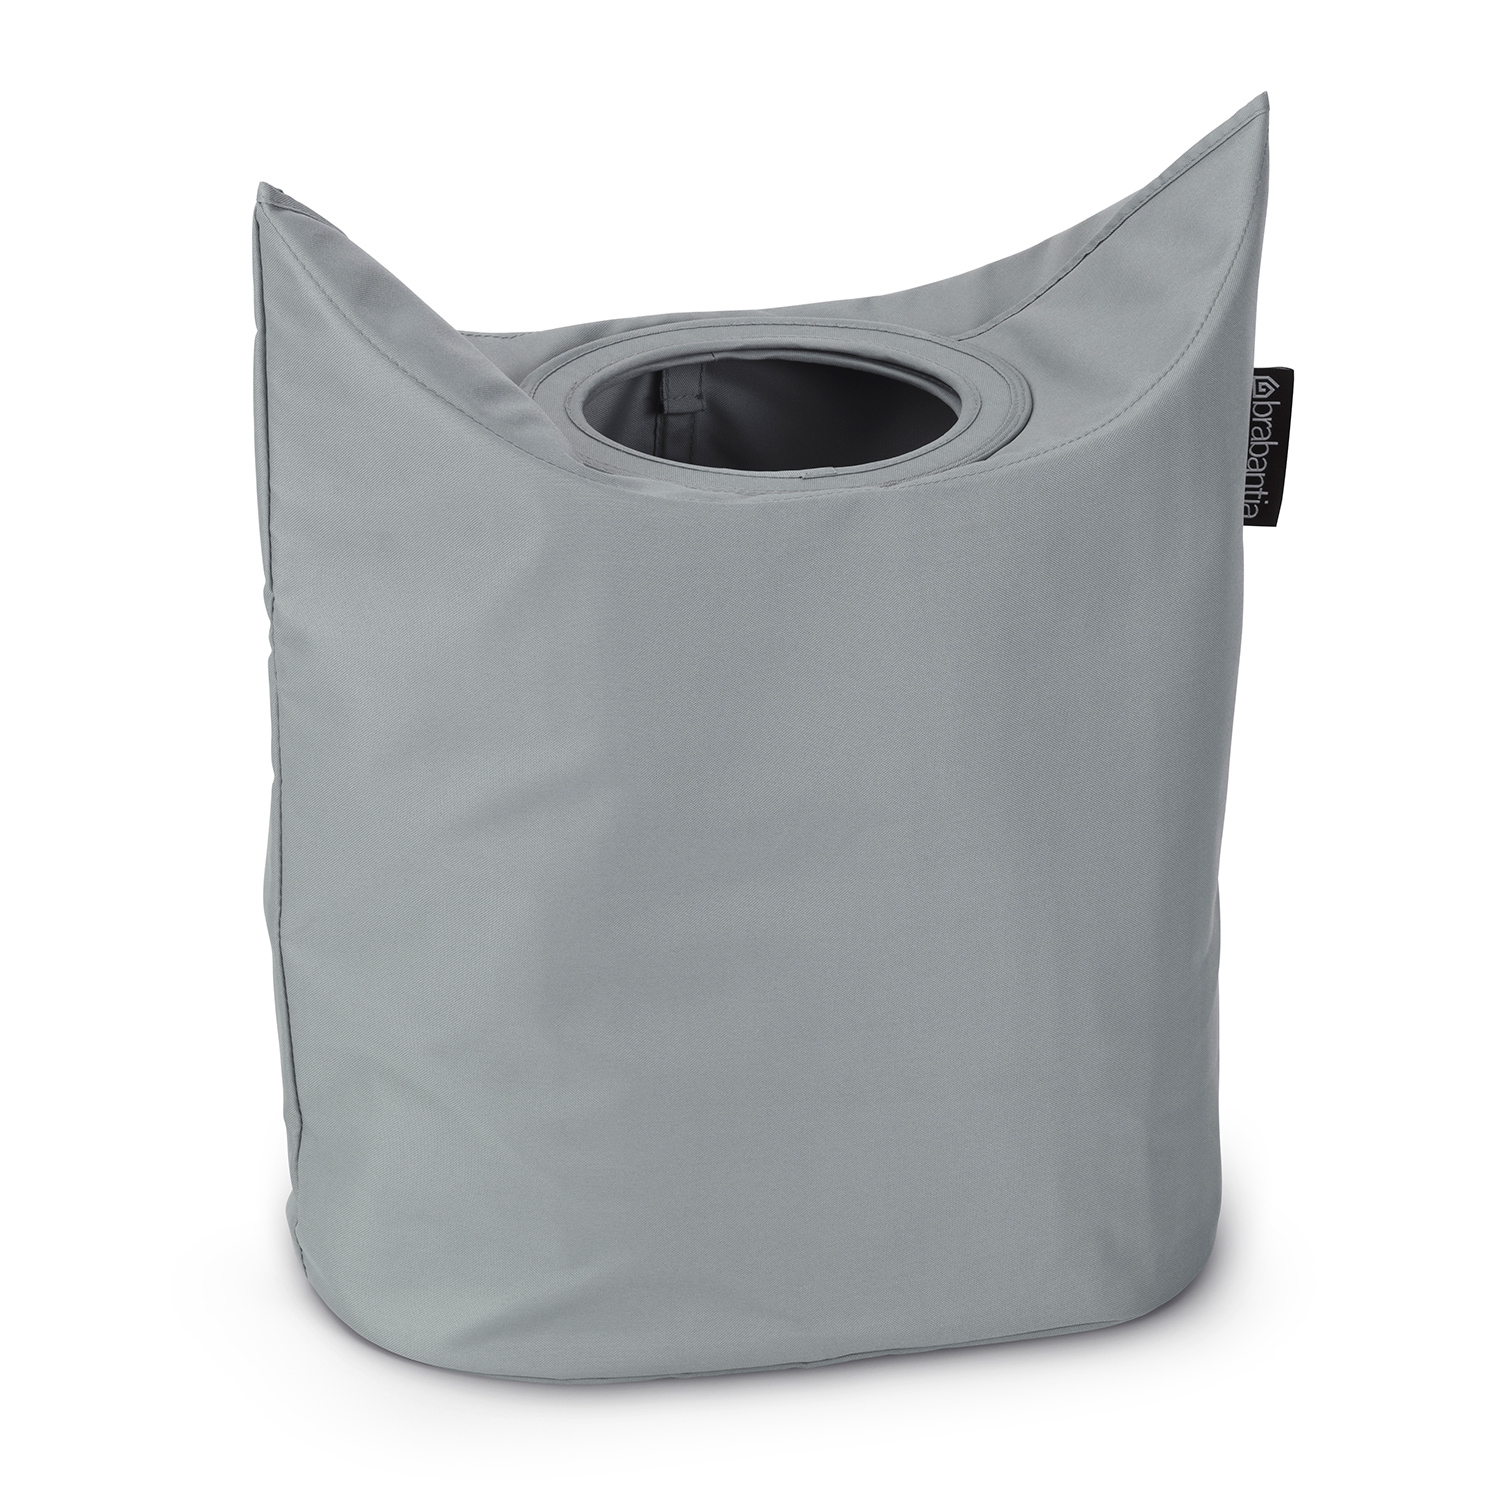 Carry Laundry Bag Brabantia Tvättkorg Oval Cool Grey Brabantia